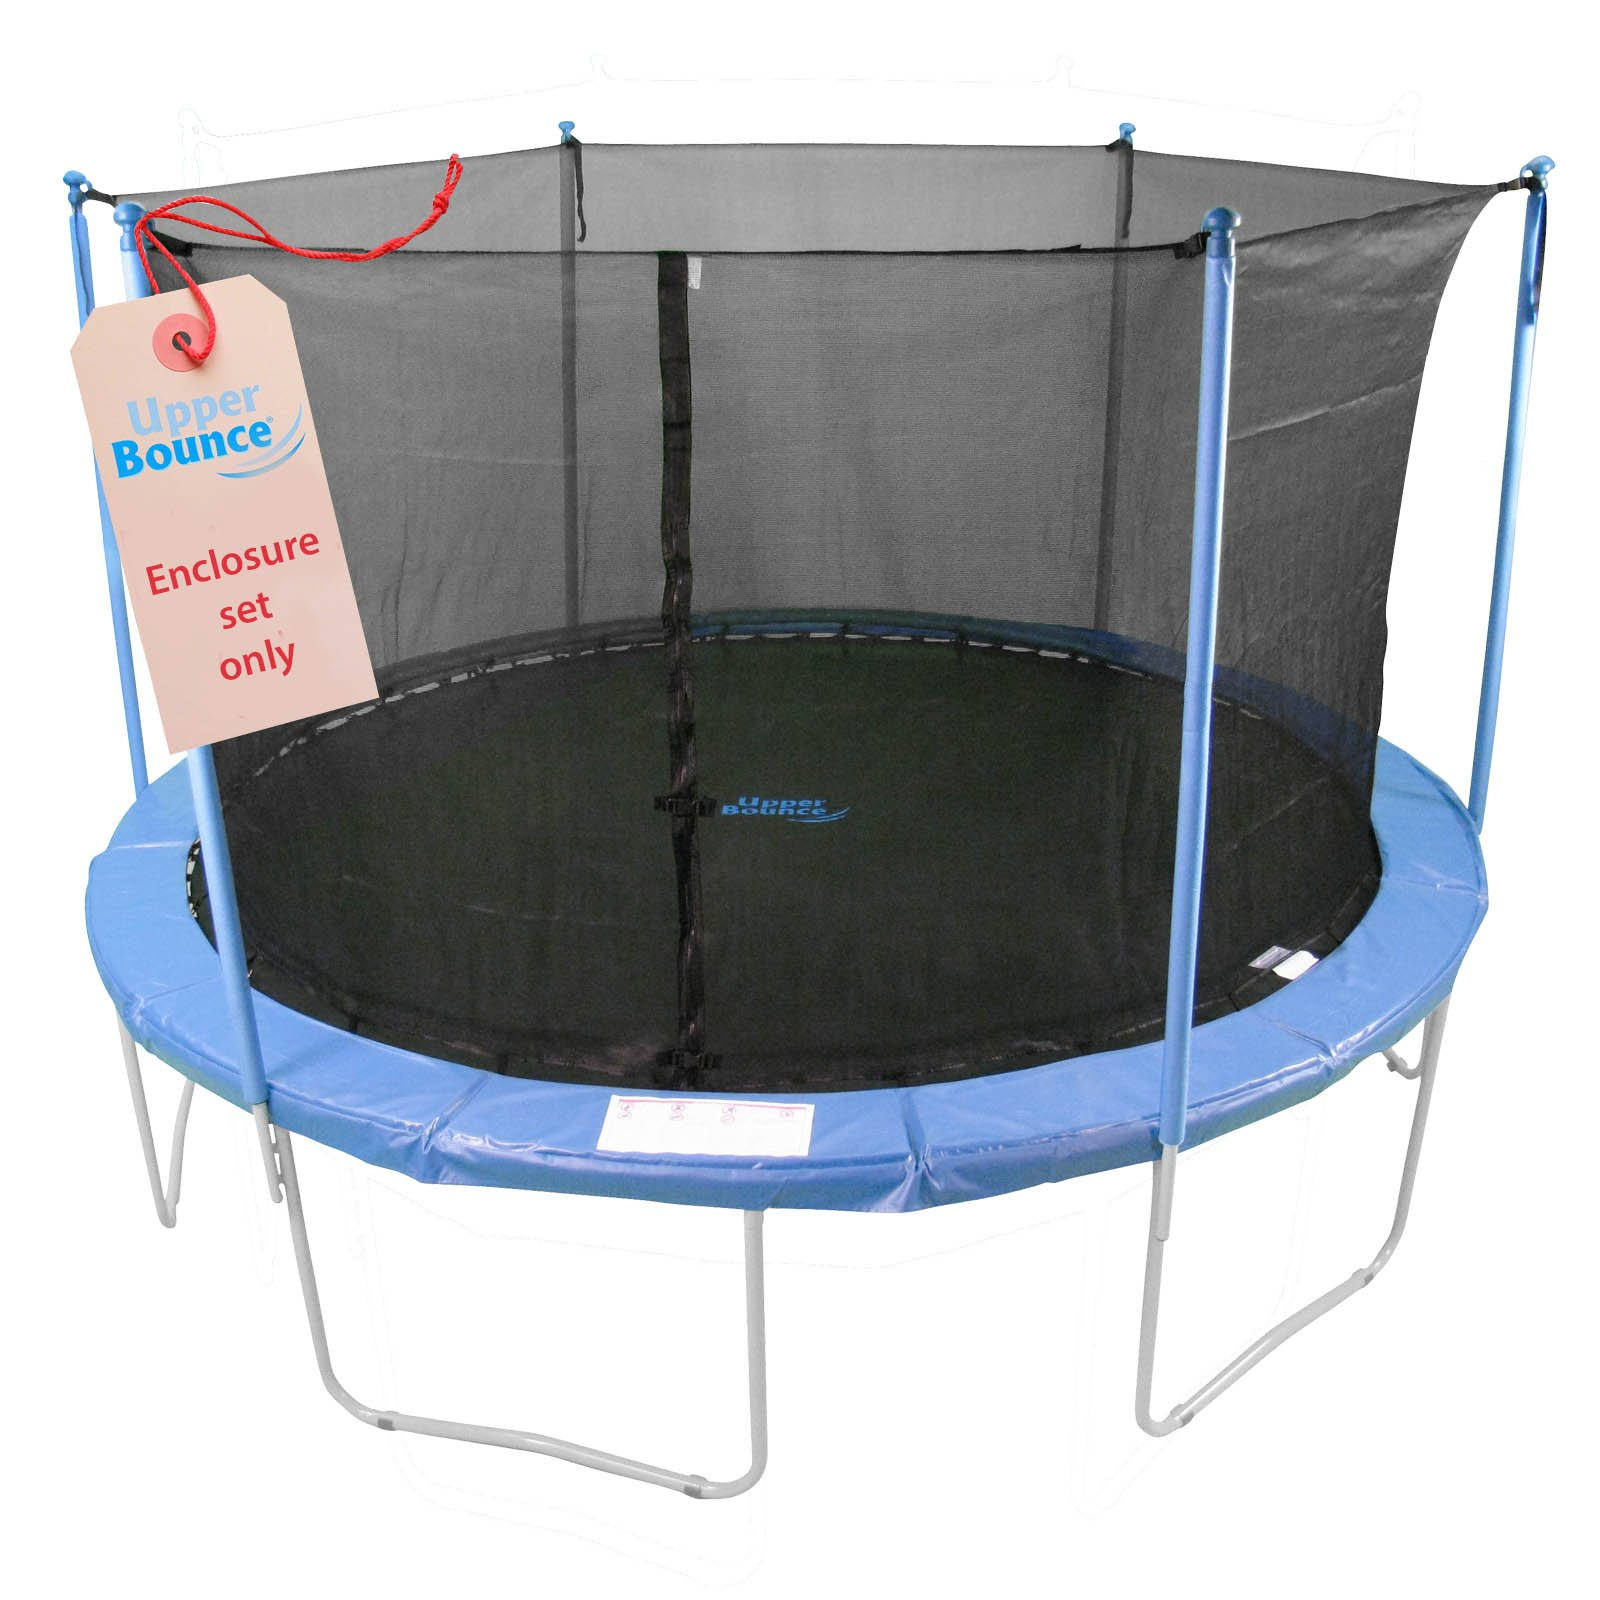 Upper Bounce Trampoline Enclosure Set, to fit 14 FT. Round Frames, for 3 or 6 W-Shaped Legs -Set Includes: Net, Poles & Hardware Only by Upper Bounce